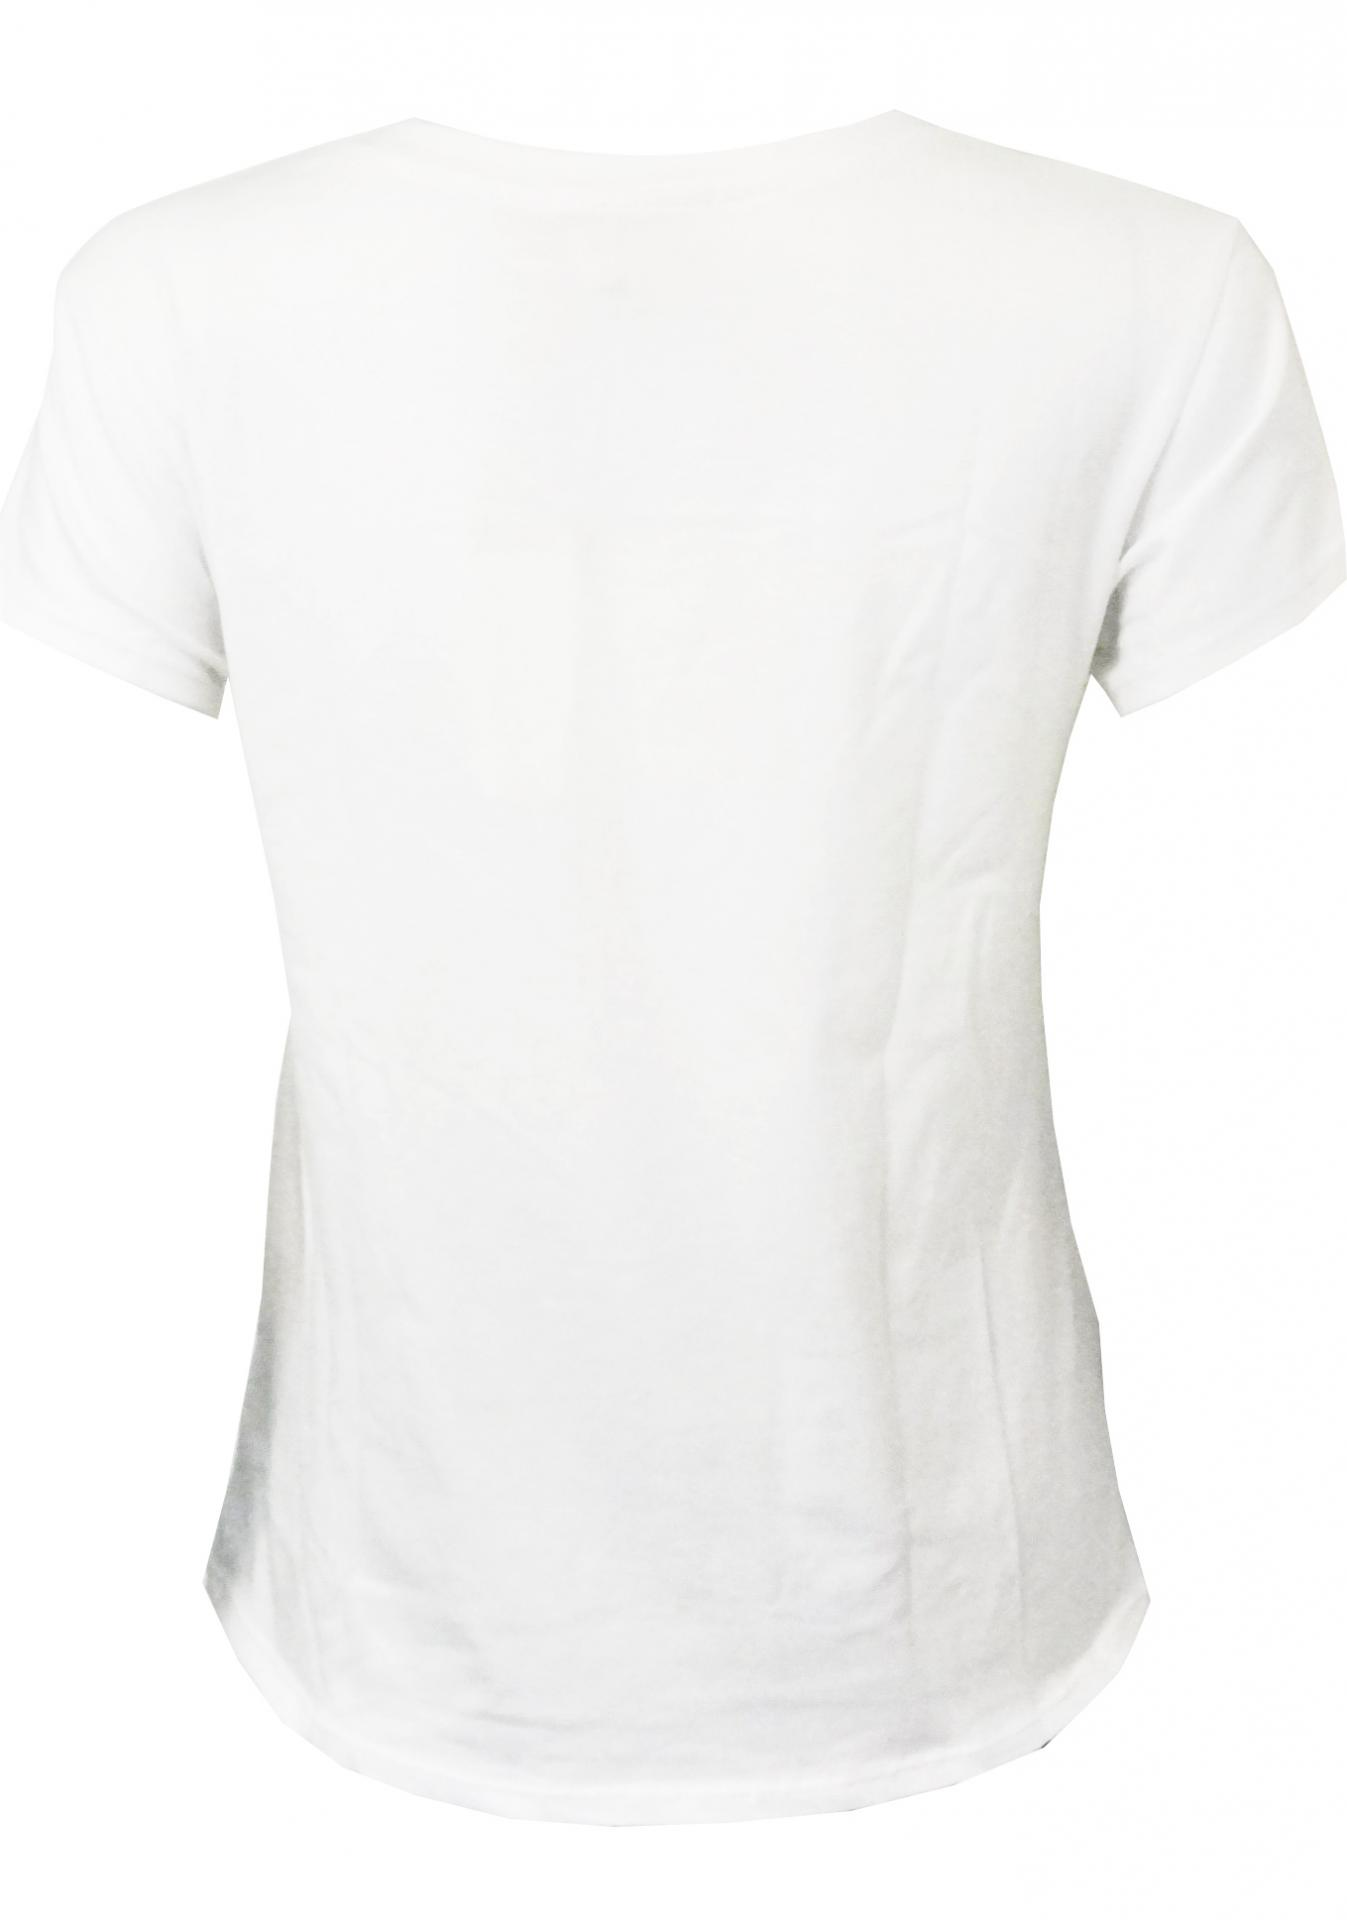 T shirt petite taille